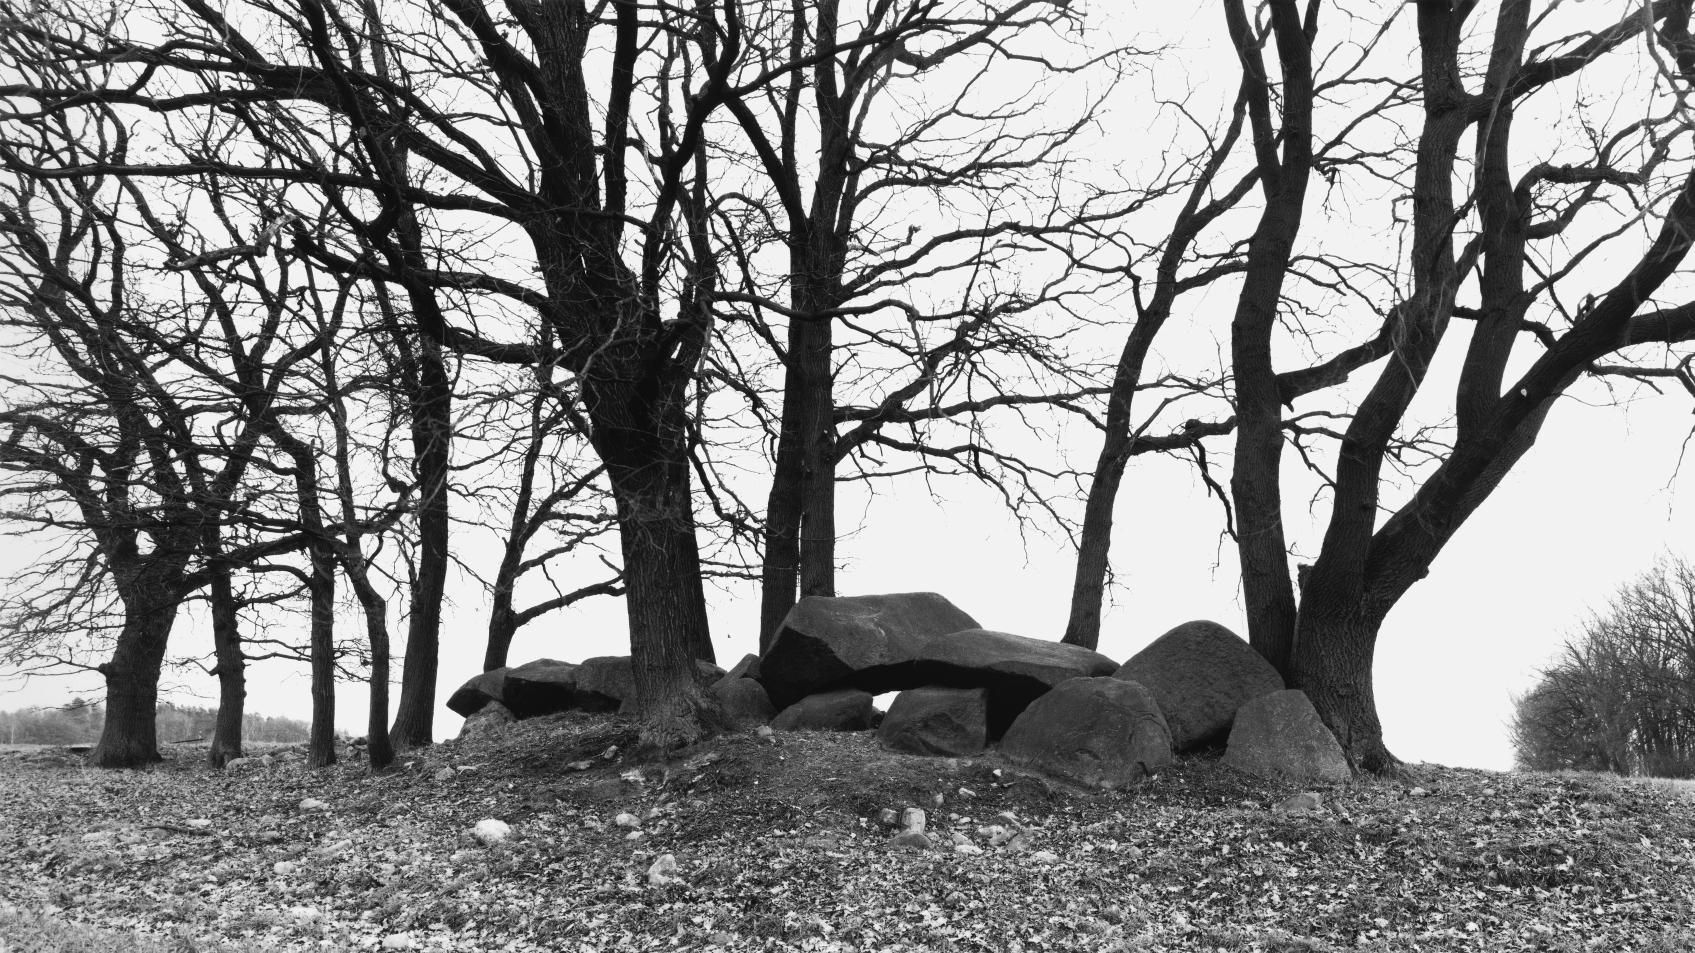 The large dolmen from Bornsen, site 1, in the Altmark district of Salzwedel. © State Office for Heritage Management and Archaeology Saxony-Anhalt, Juraj Lipták.